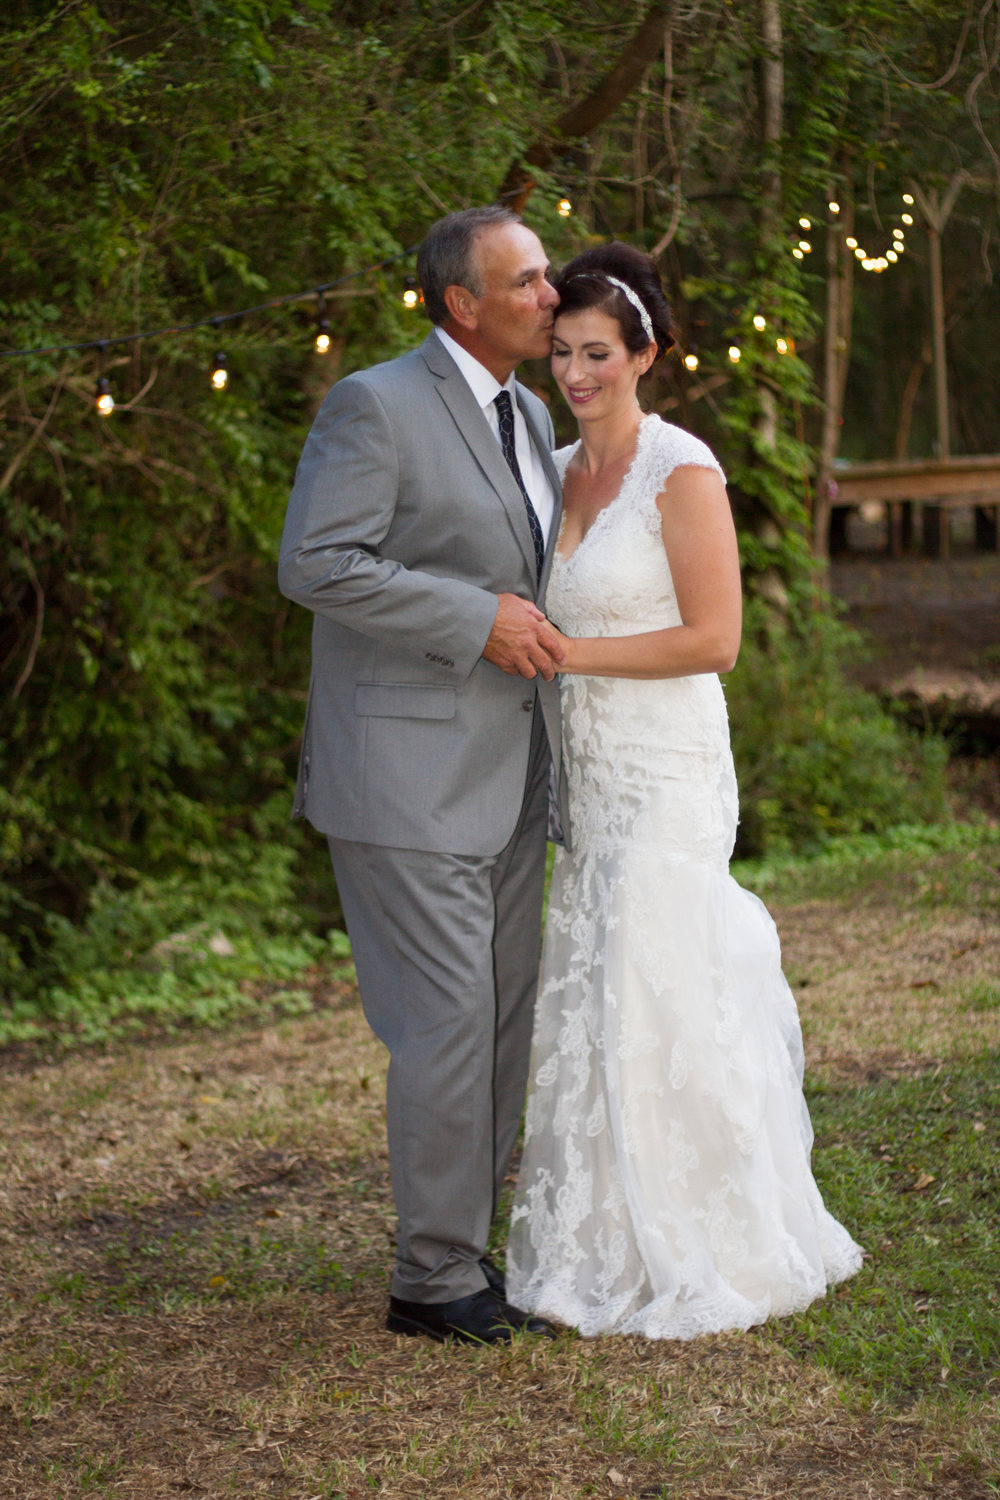 Jacqueline and Shawn Wedding (403 of 597).jpg